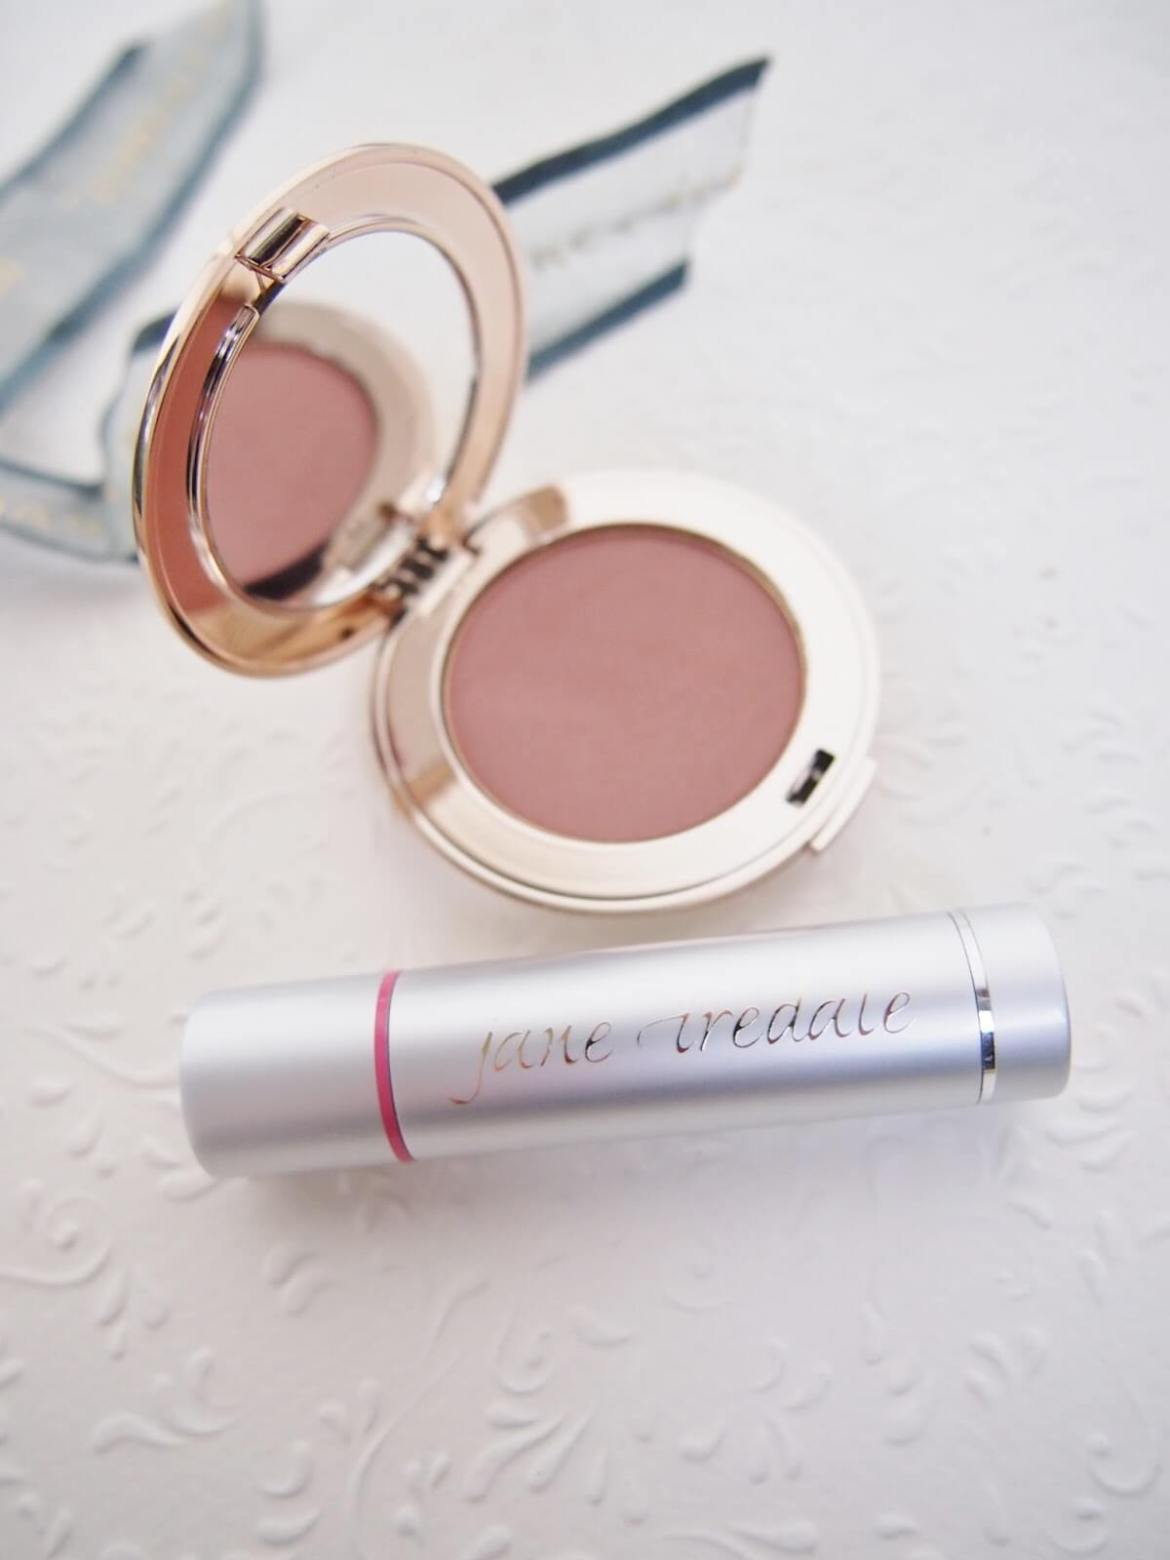 jane iredale poskipuna huulivoide